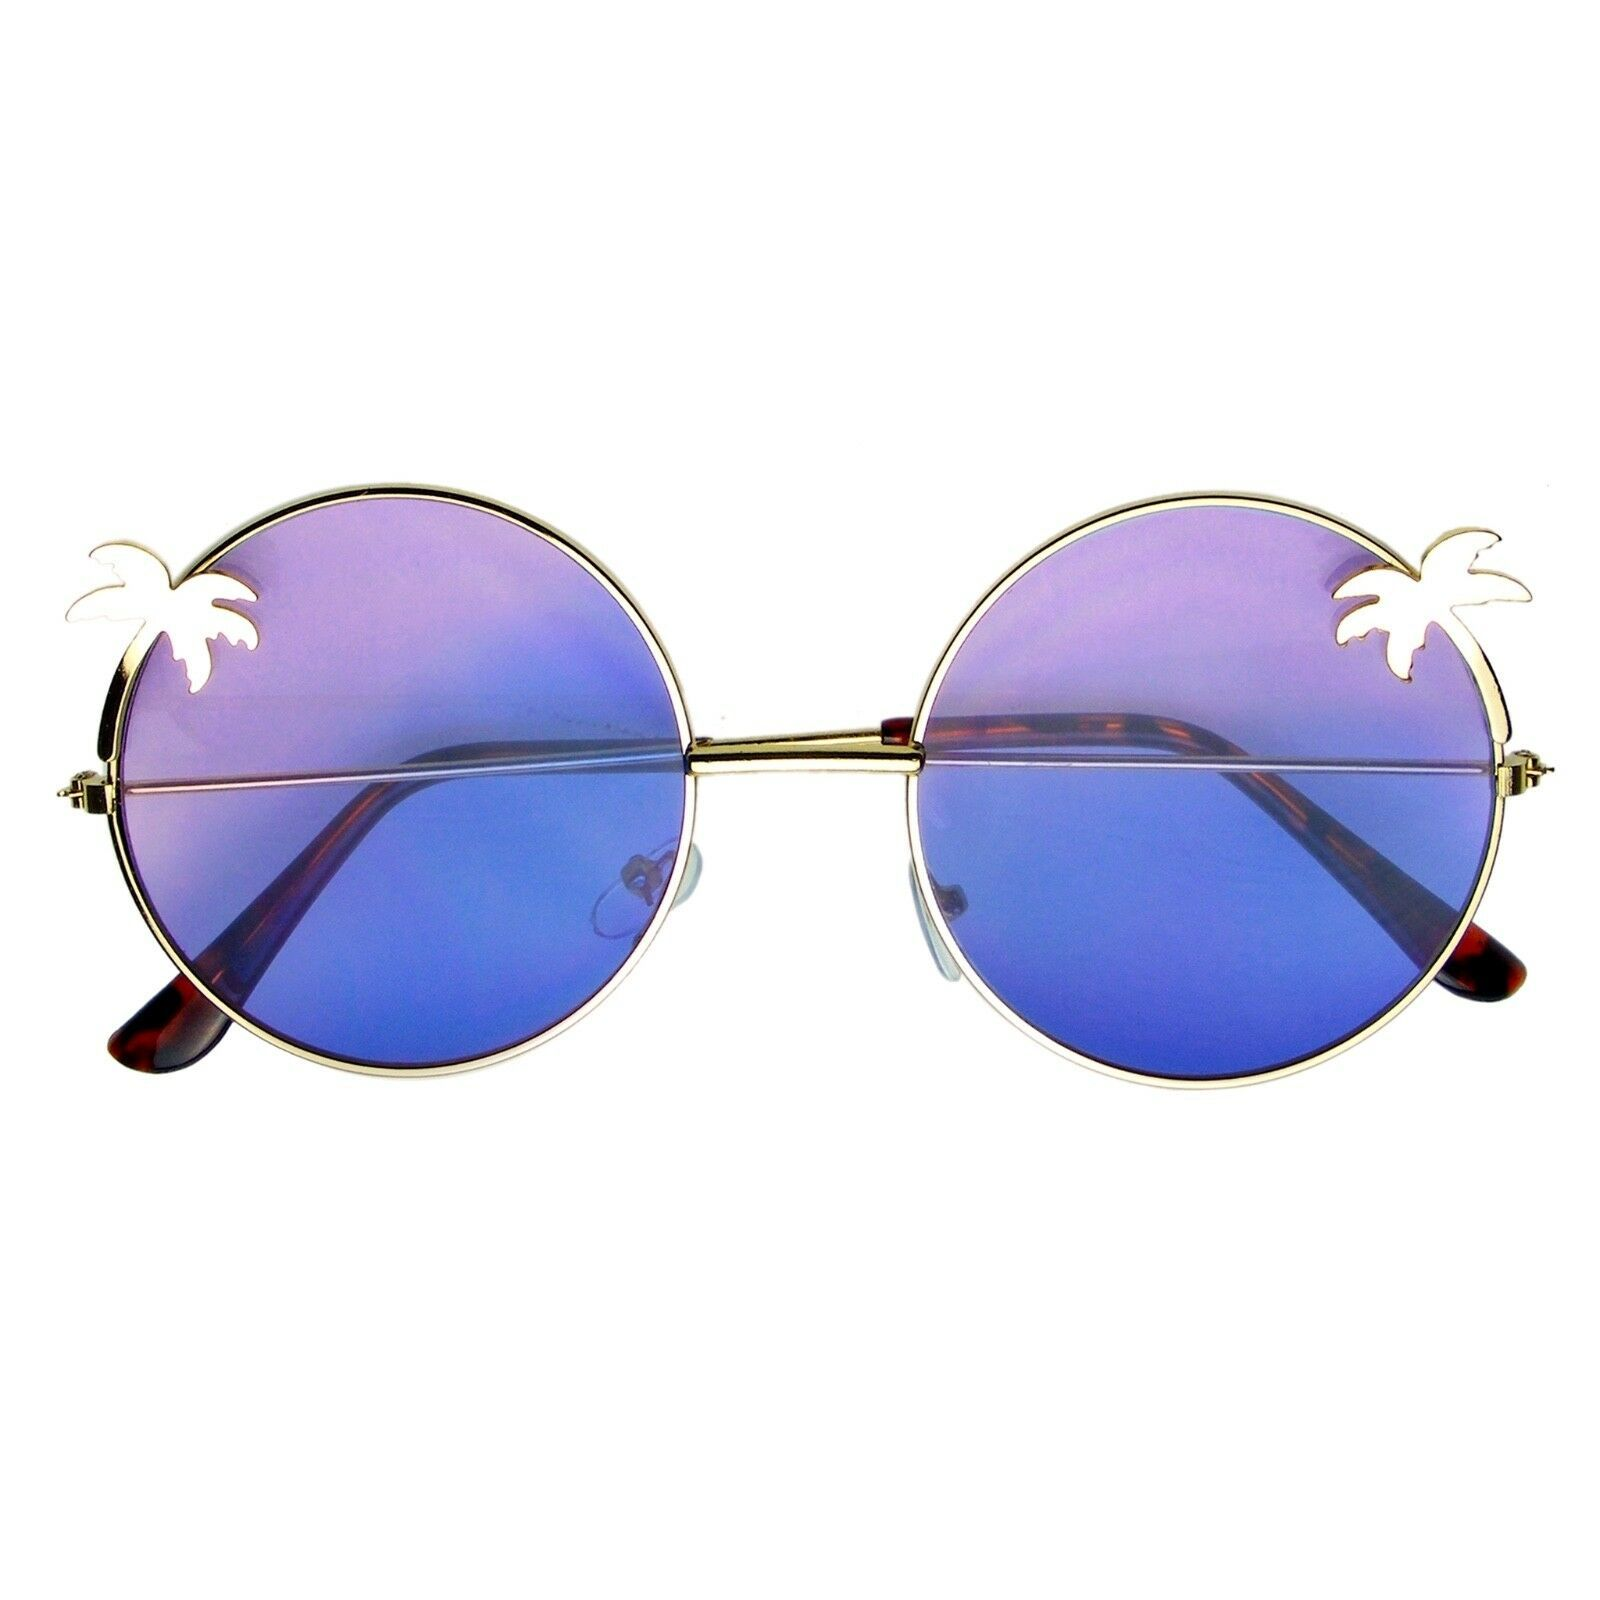 Sunglasses Novelty Indie Palm Tree Gradient Lens Round Hippie Sunglasses